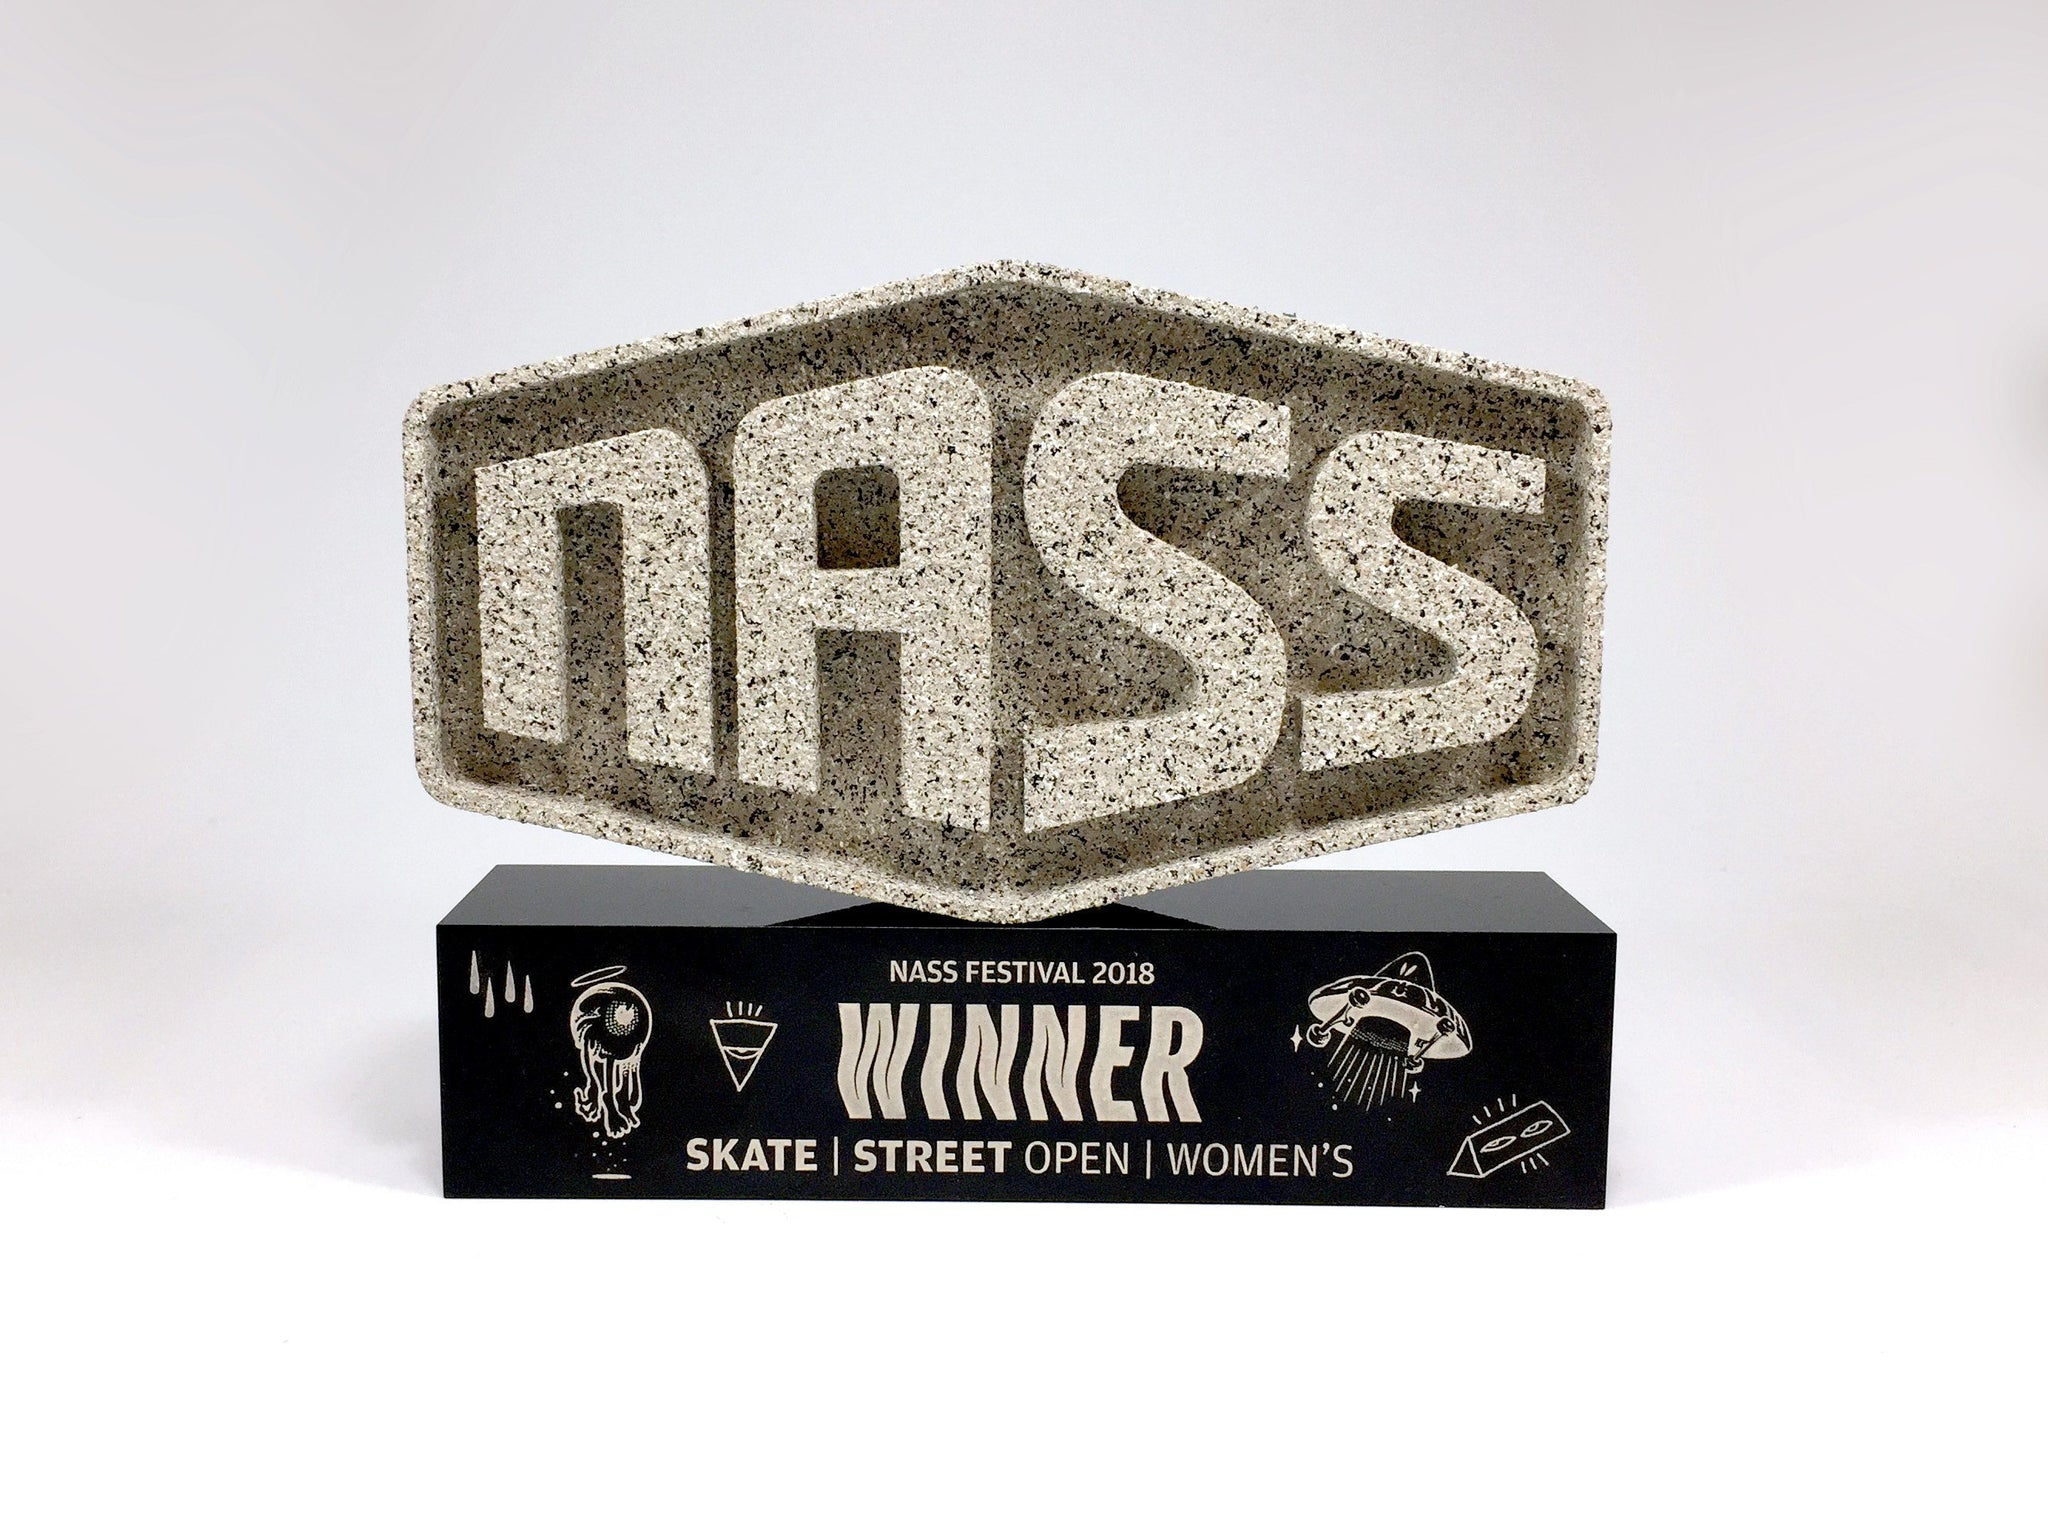 NASS Stone Award Bespoke Mixed Media Awards Creative Awards